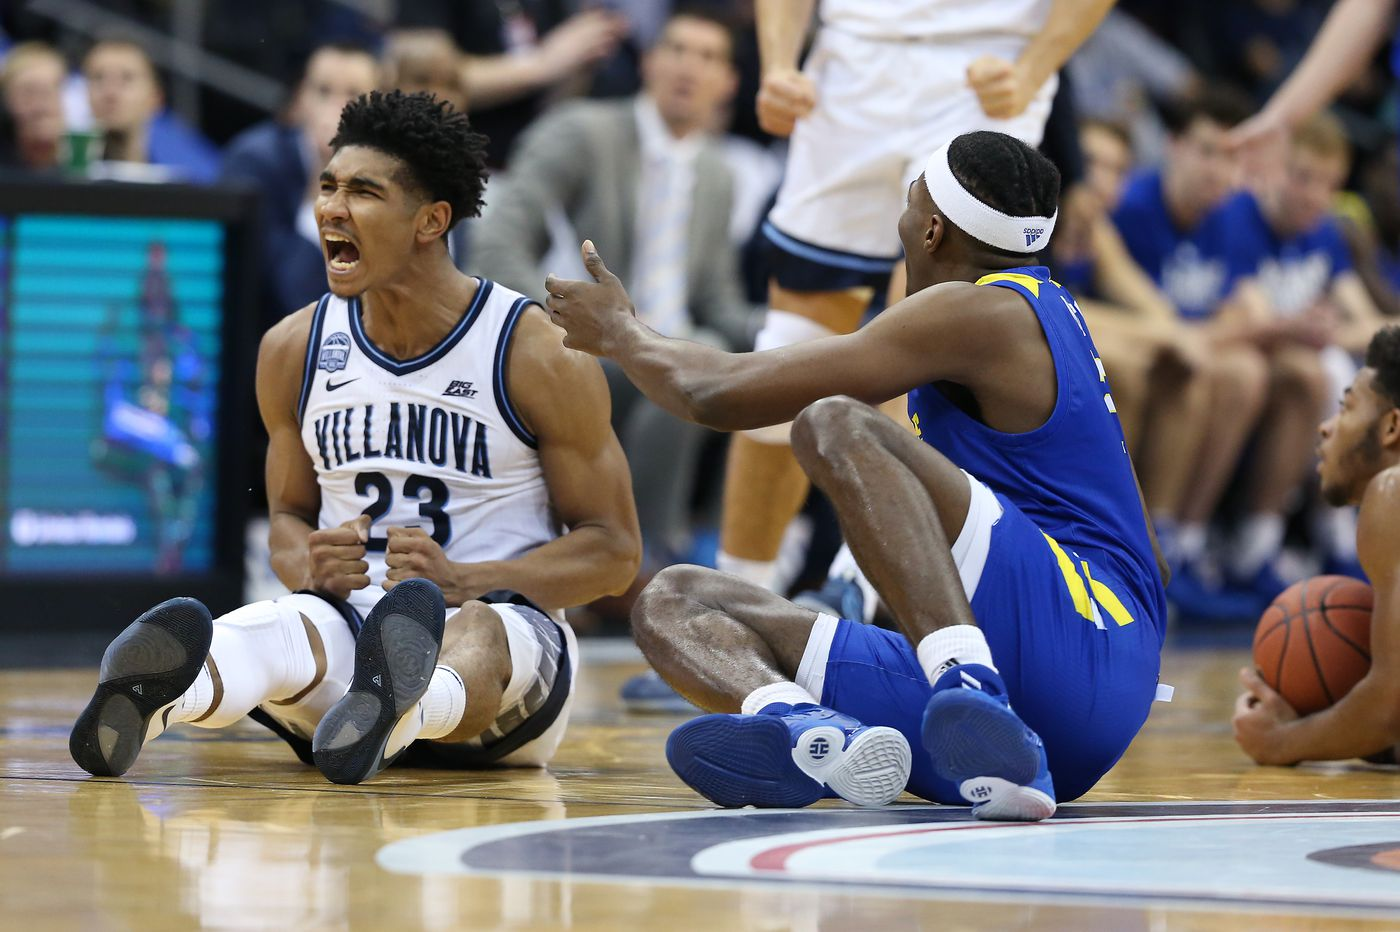 Villanova's big test, a big game from Isiah Deas, and other City 6 observations | Mike Jensen